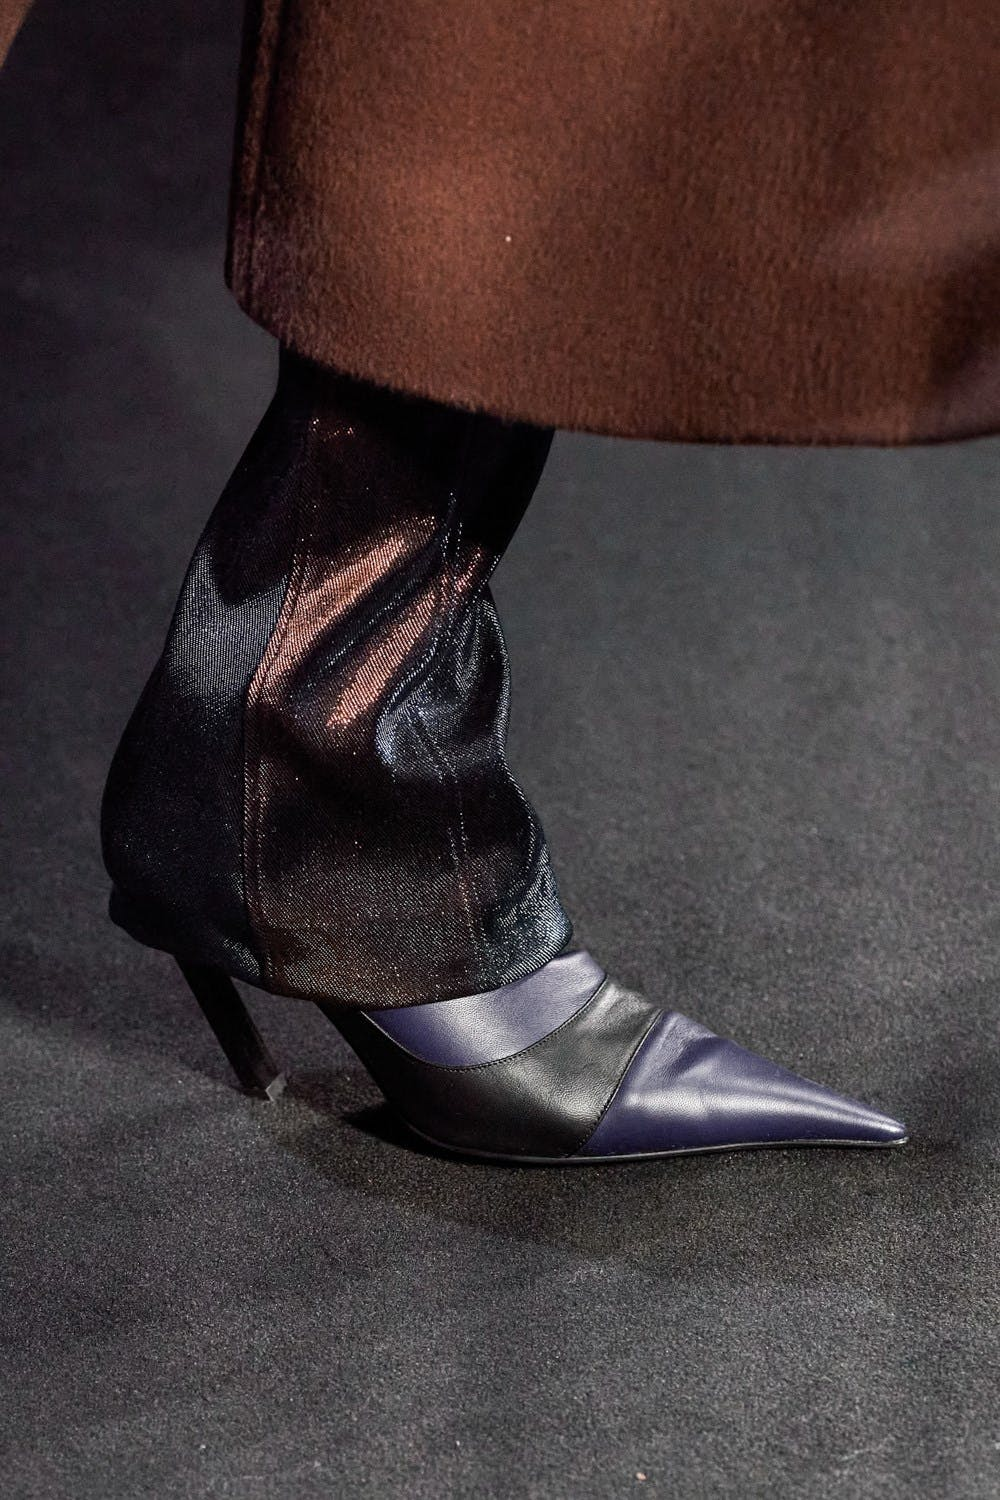 Mugler Runway Details Extra Long Flared Panel Trousers Color-Blocked Leather Heels in Navy and Black Fall 20 RTW